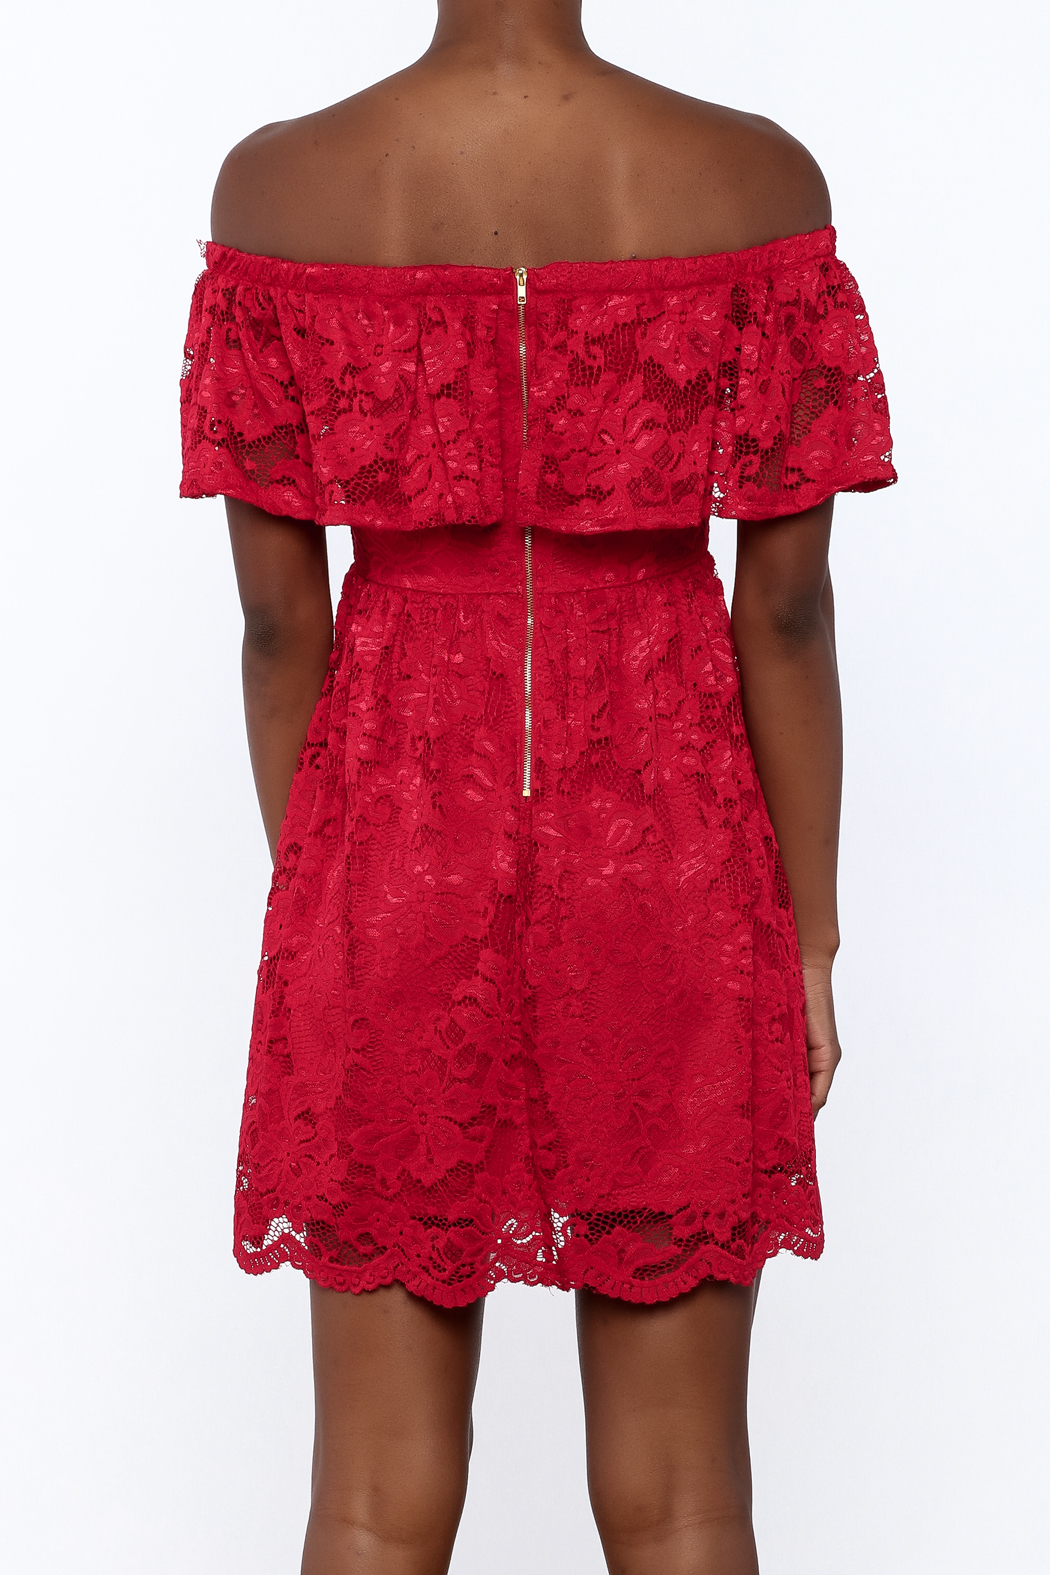 1 Funky Red Lace Dress - Back Cropped Image